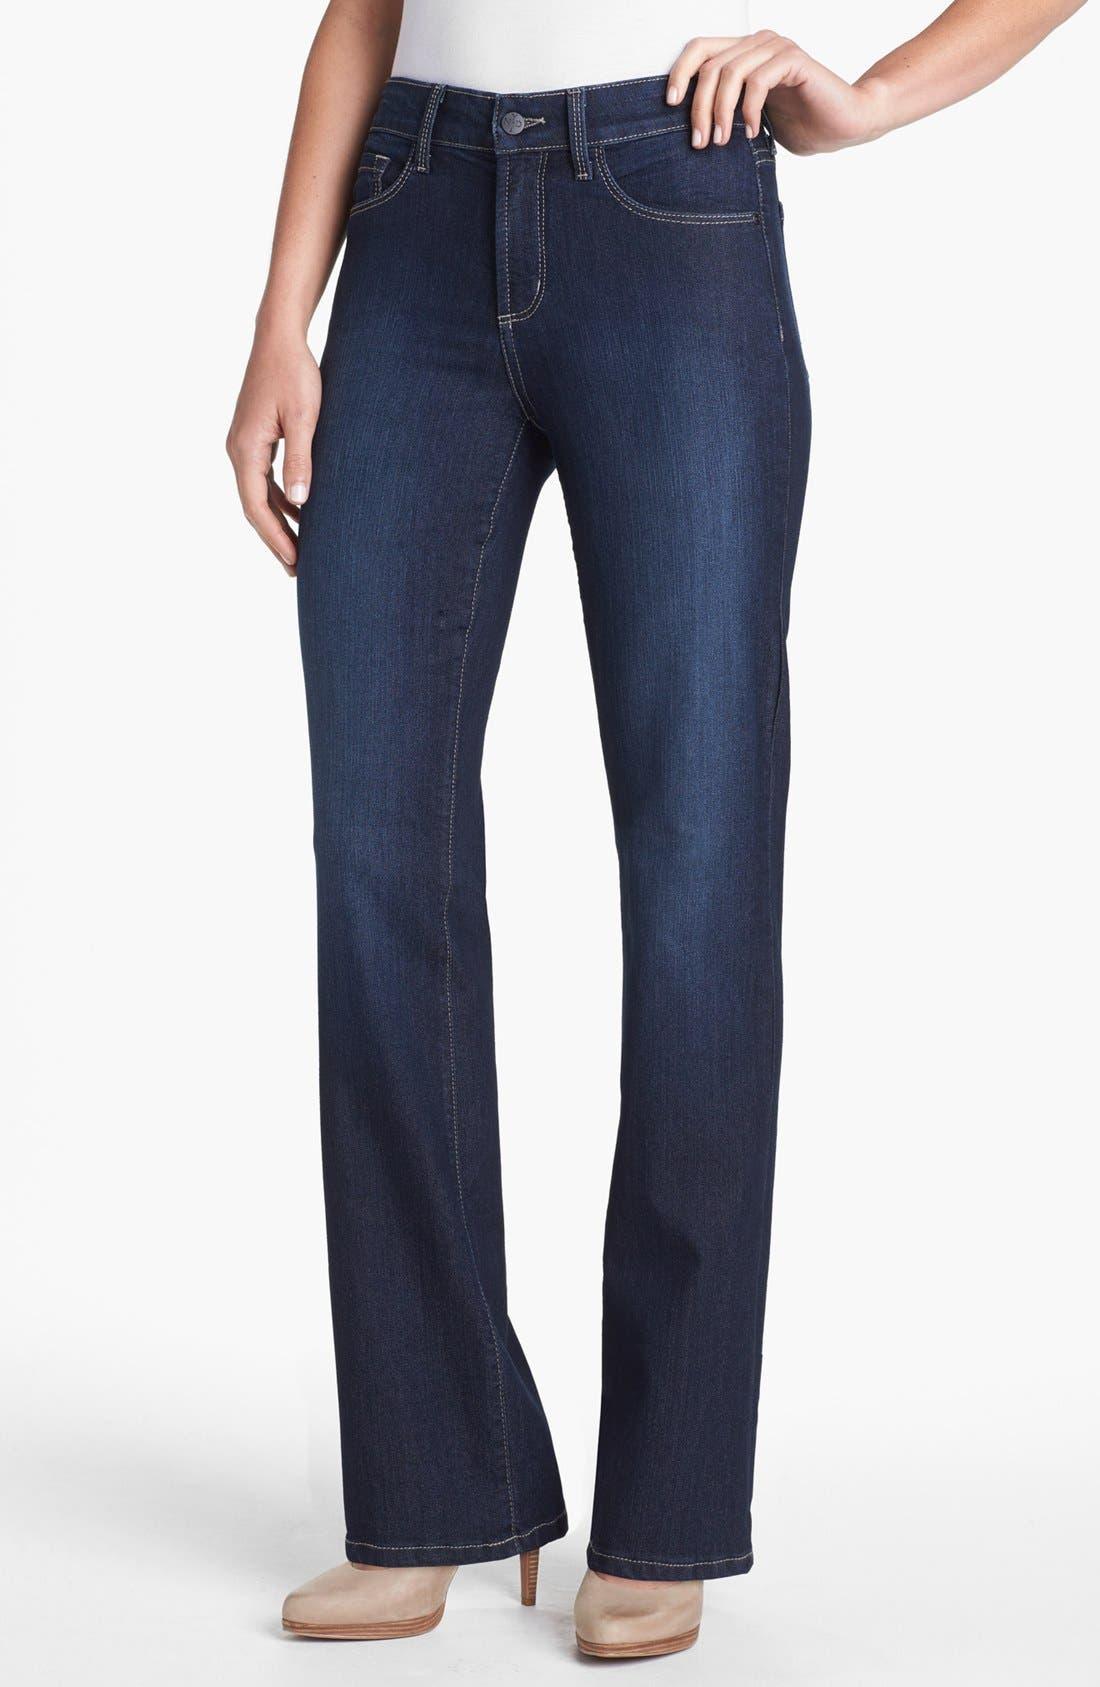 Main Image - NYDJ 'Barbara' Embellished Pocket Stretch Bootcut Jeans (Hollywood) (Regular & Petite)